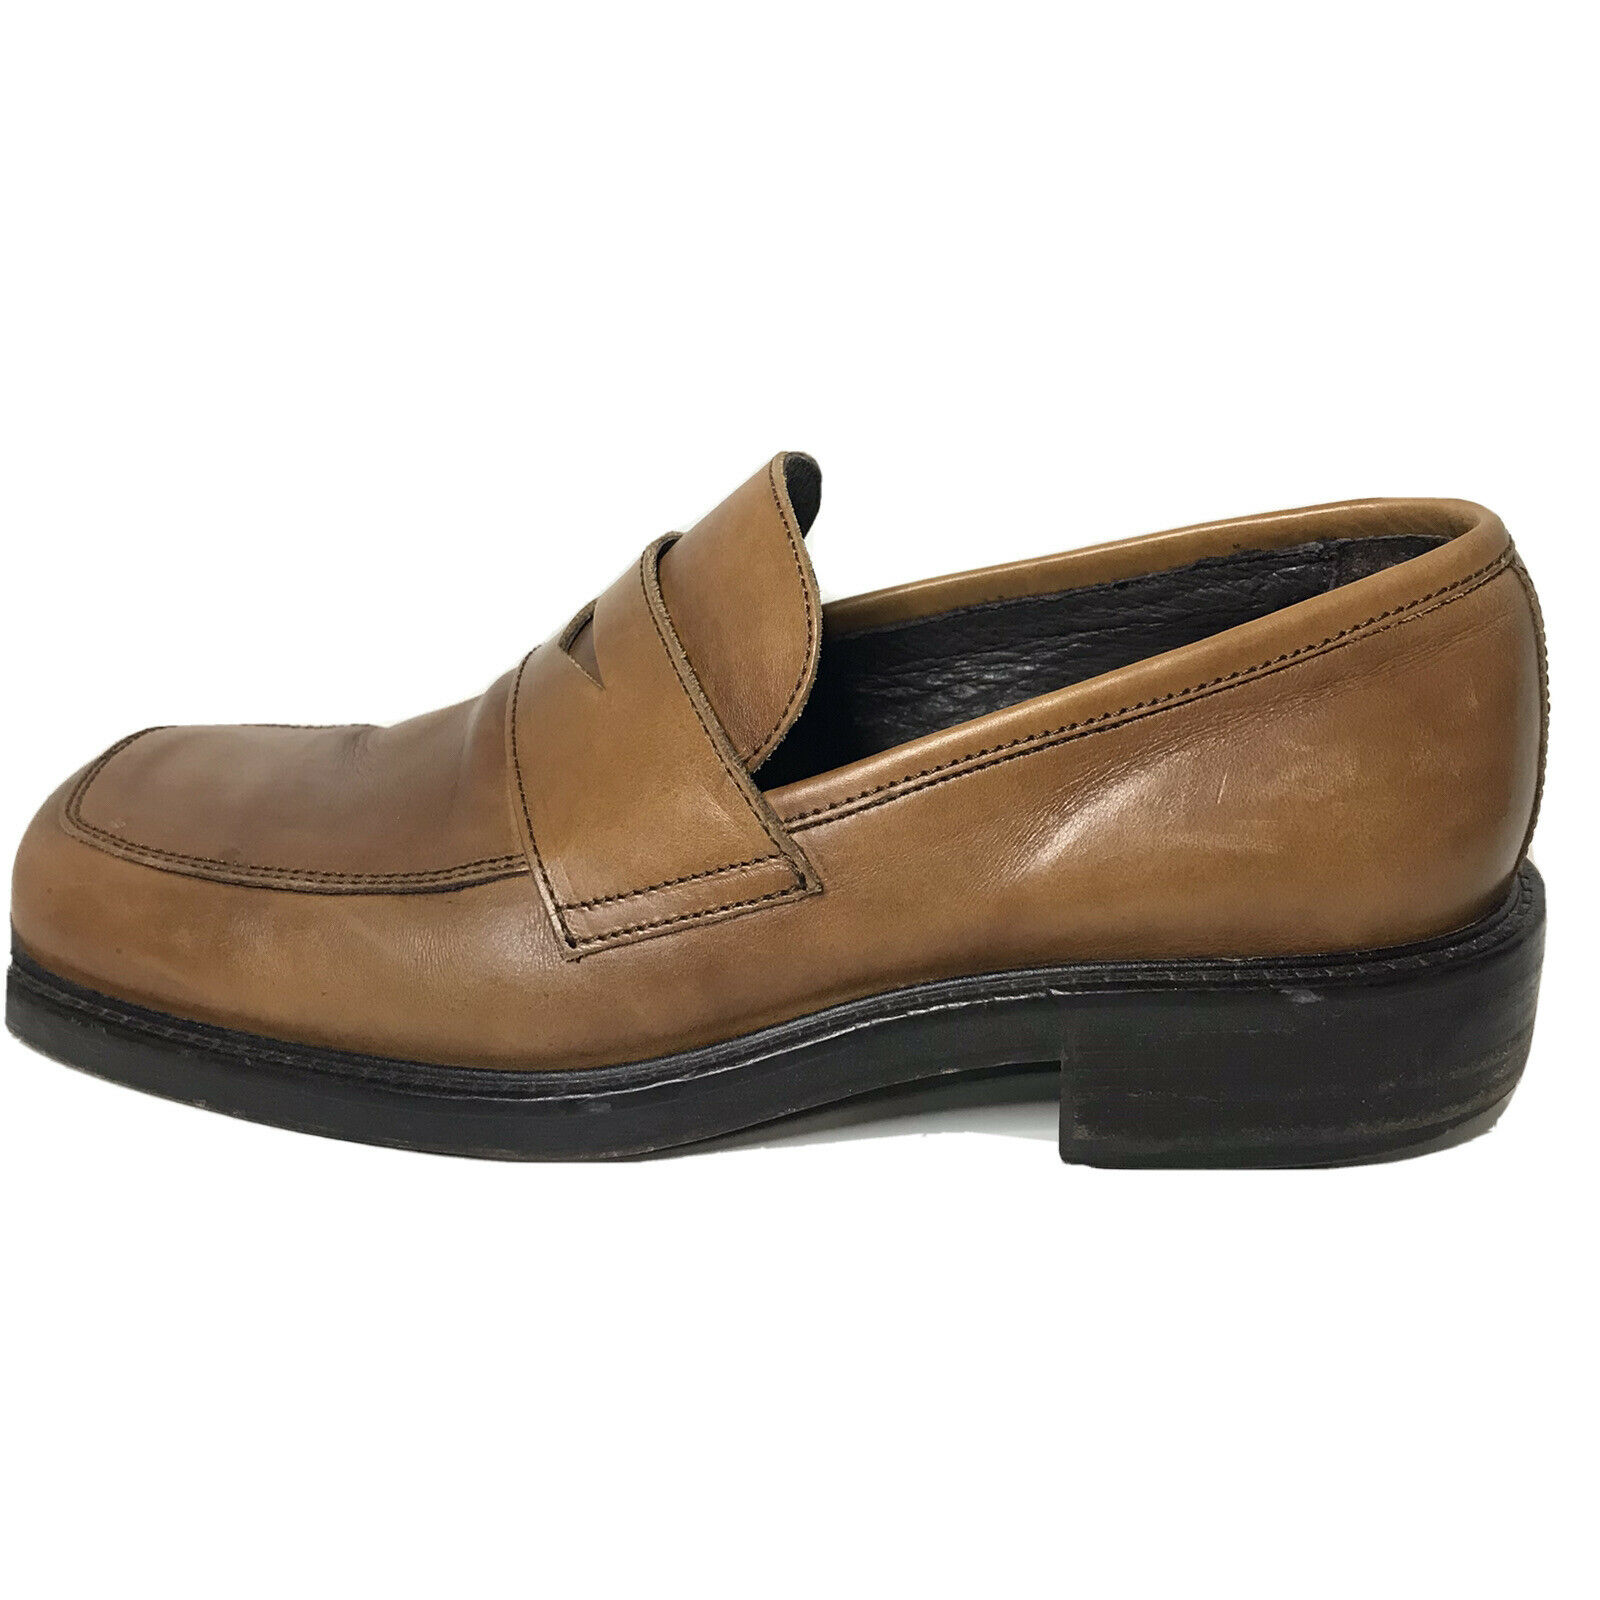 Kenneth Cole New York Men's Leather Slip-On Loafer Shoes Sz 8 A215